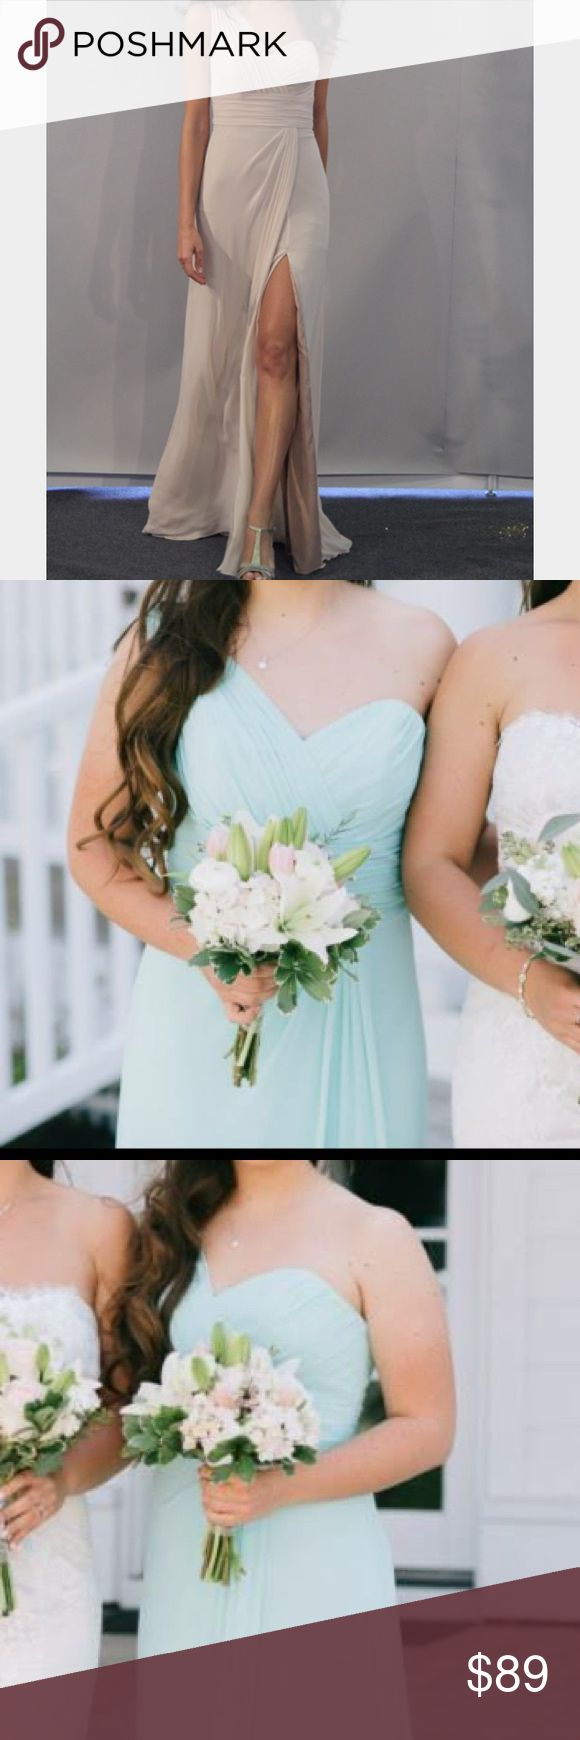 Watters&Watters Light Blue Bridesmaid Dress Chiffon, light blue Watters & Watters collection piece. Extremely lightweight and breathable while also complimenting the waist. The soft blue color is a MUST this prom season! Only worn once and in perfect condition! Comment below for more details! 👗 Watters&Watters Dresses Wedding